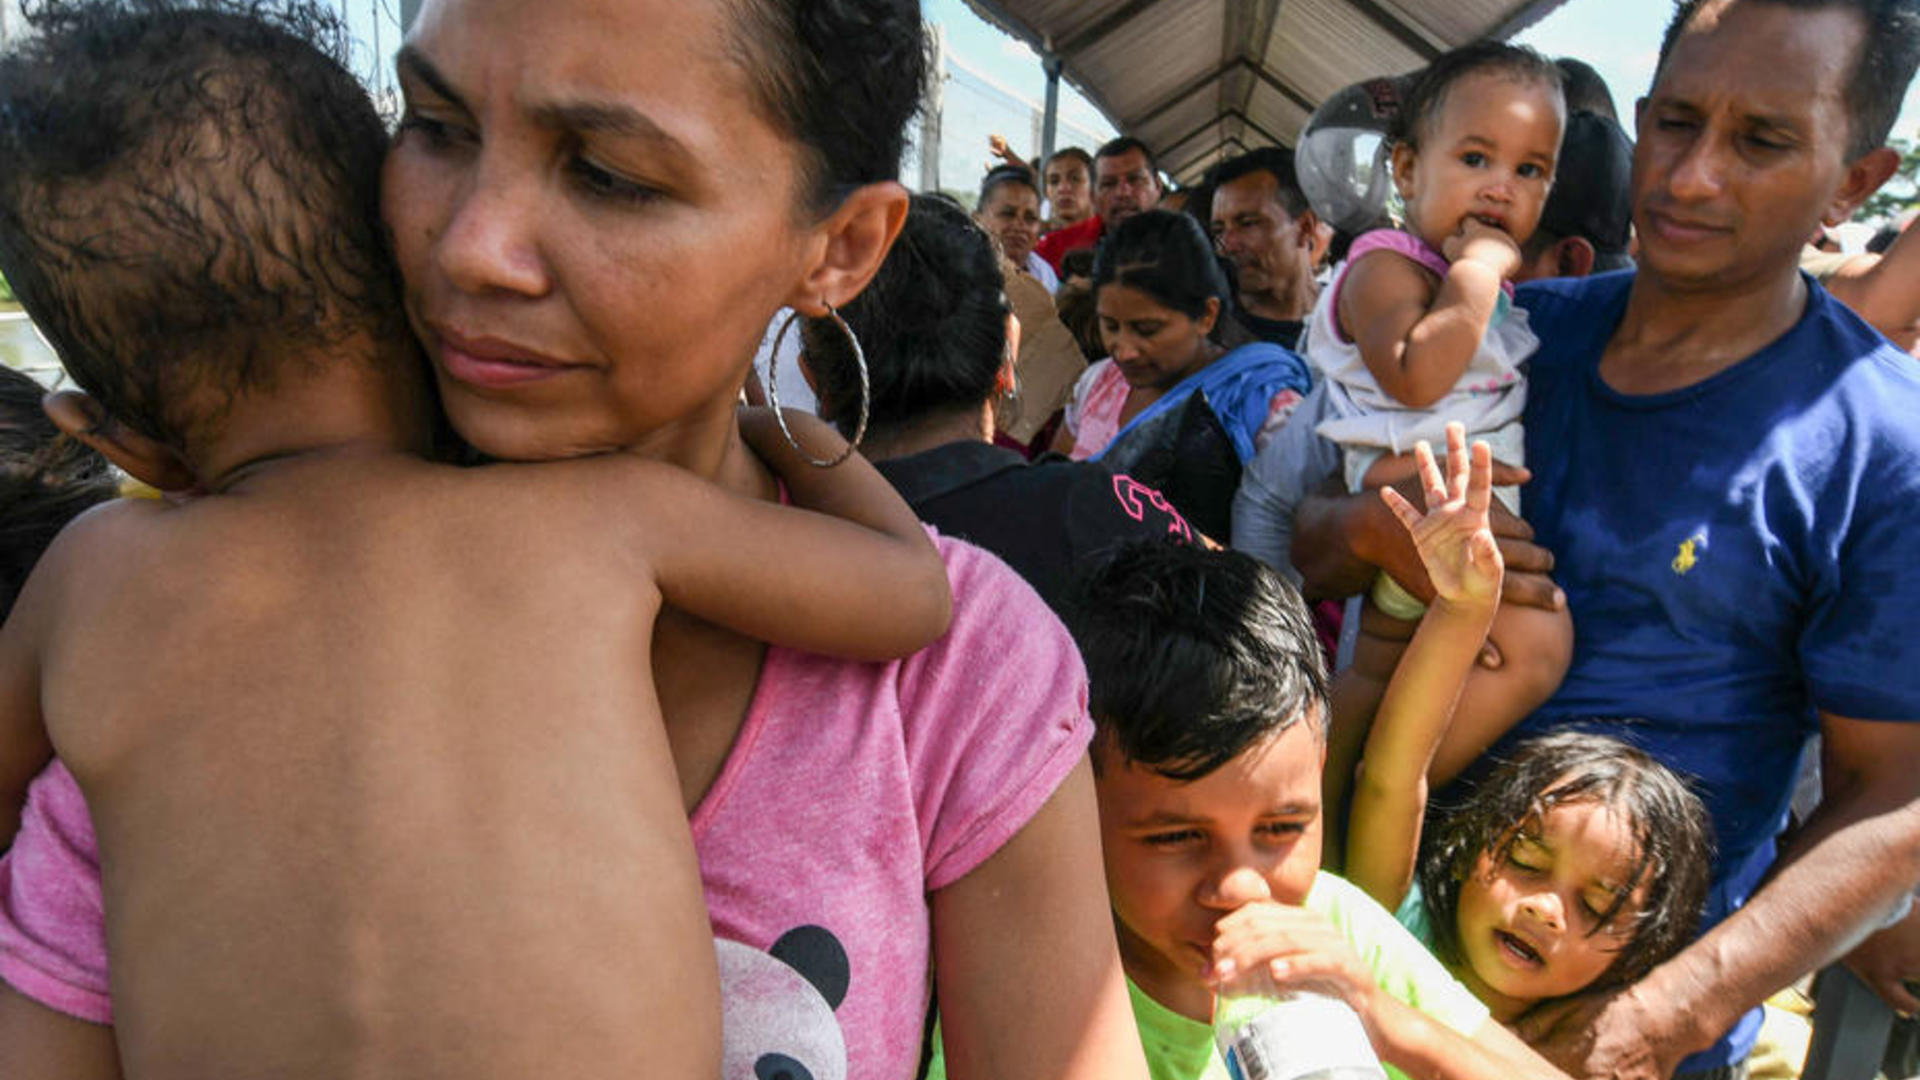 A family fleeing violence in Honduras waits to cross into Mexico on their way to seek asylum in the U.S.